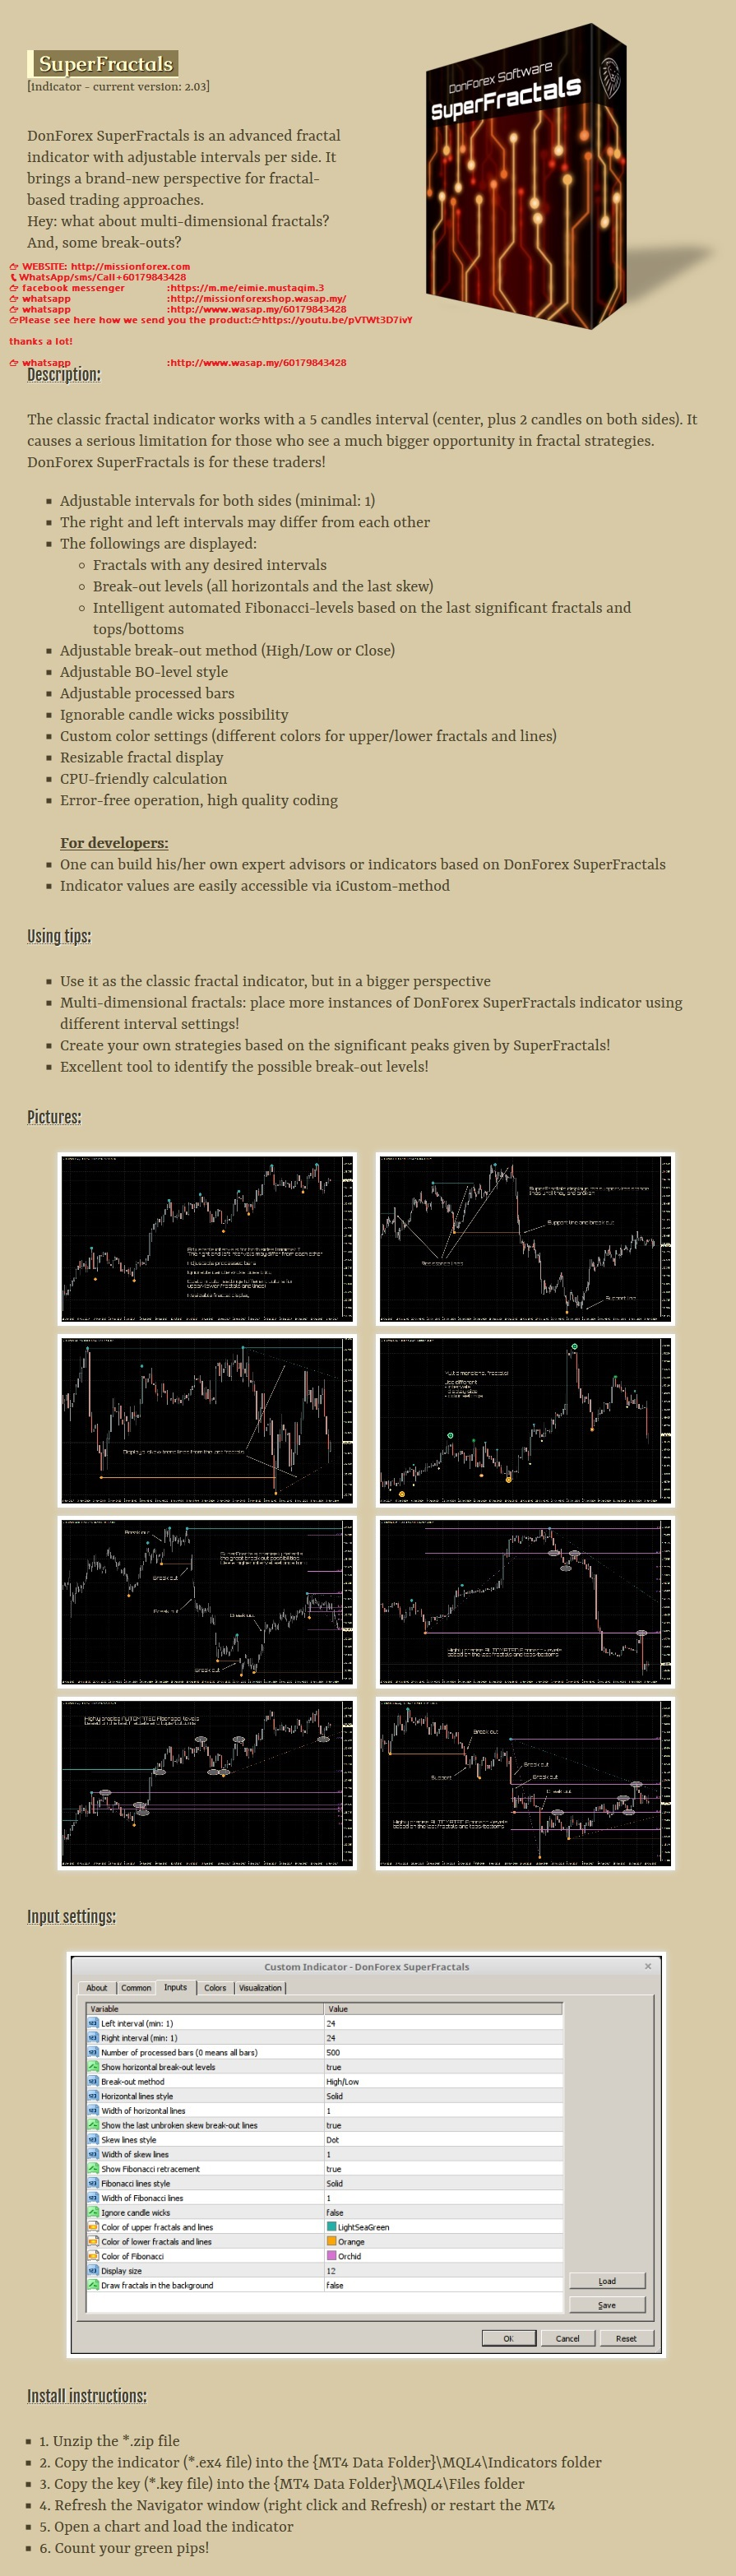 Don-Forex-Trade-For-A-Living-Premium-Forex-Trading-Tools-Super-Fractals